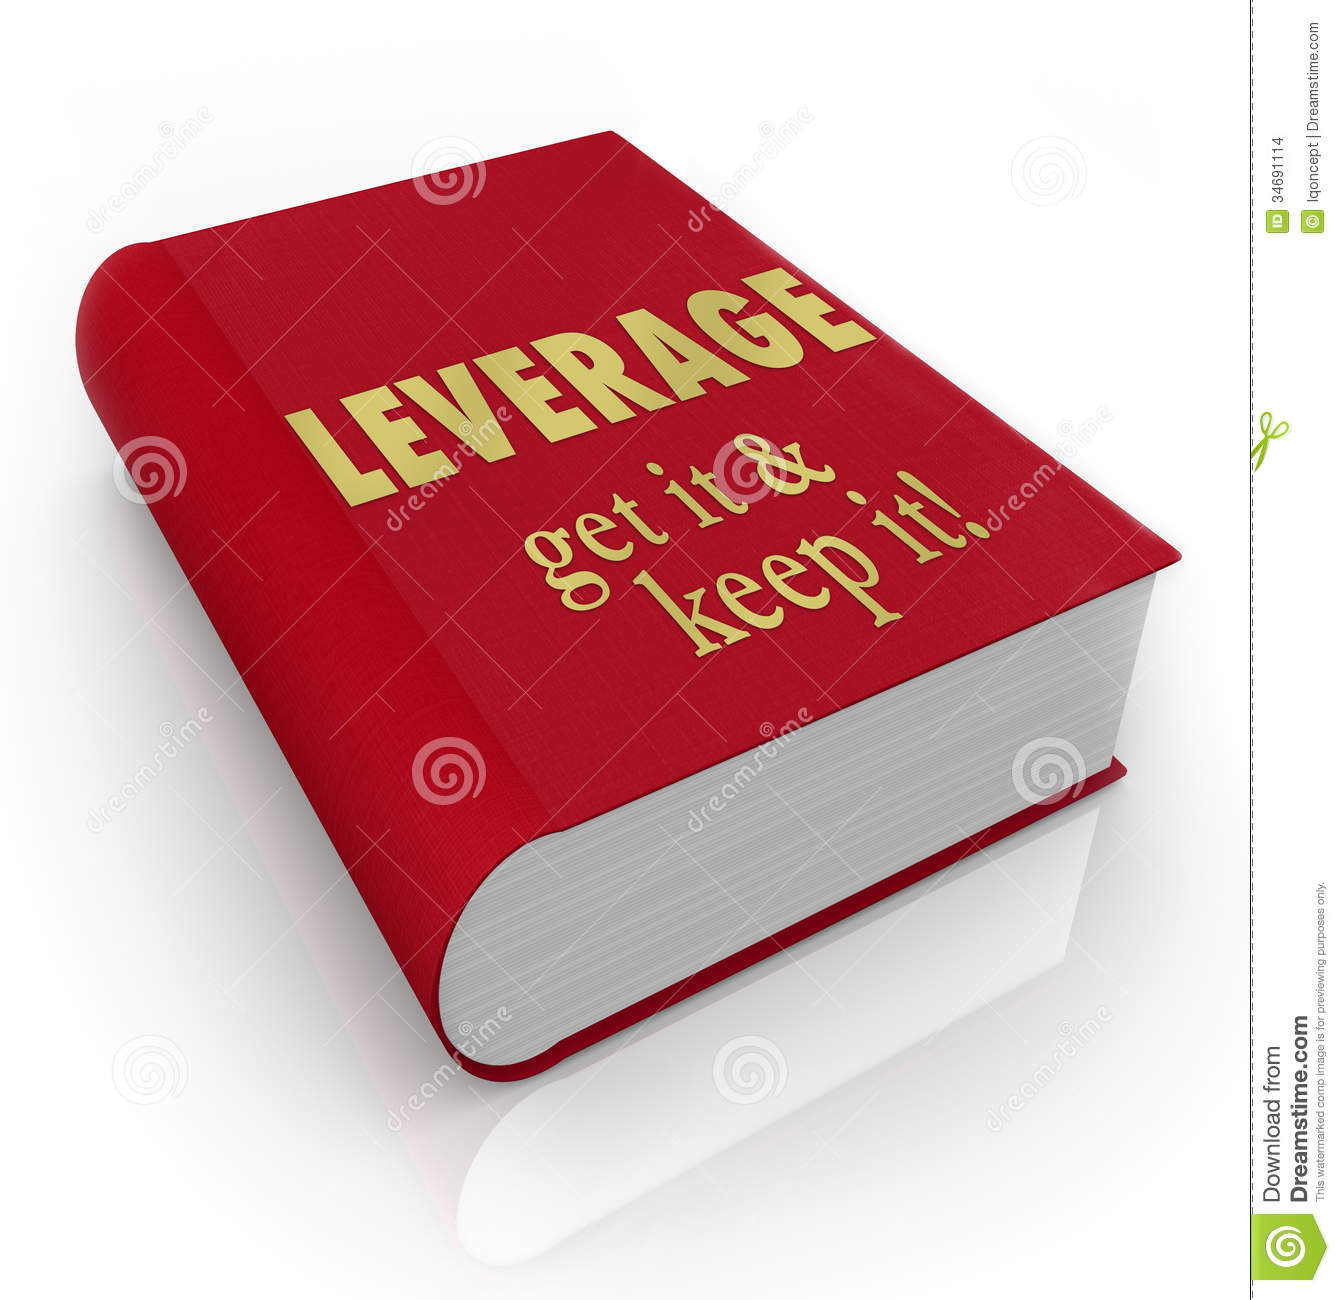 Get Book Cover Images From : Leverage get it keep book cover advantage stock images